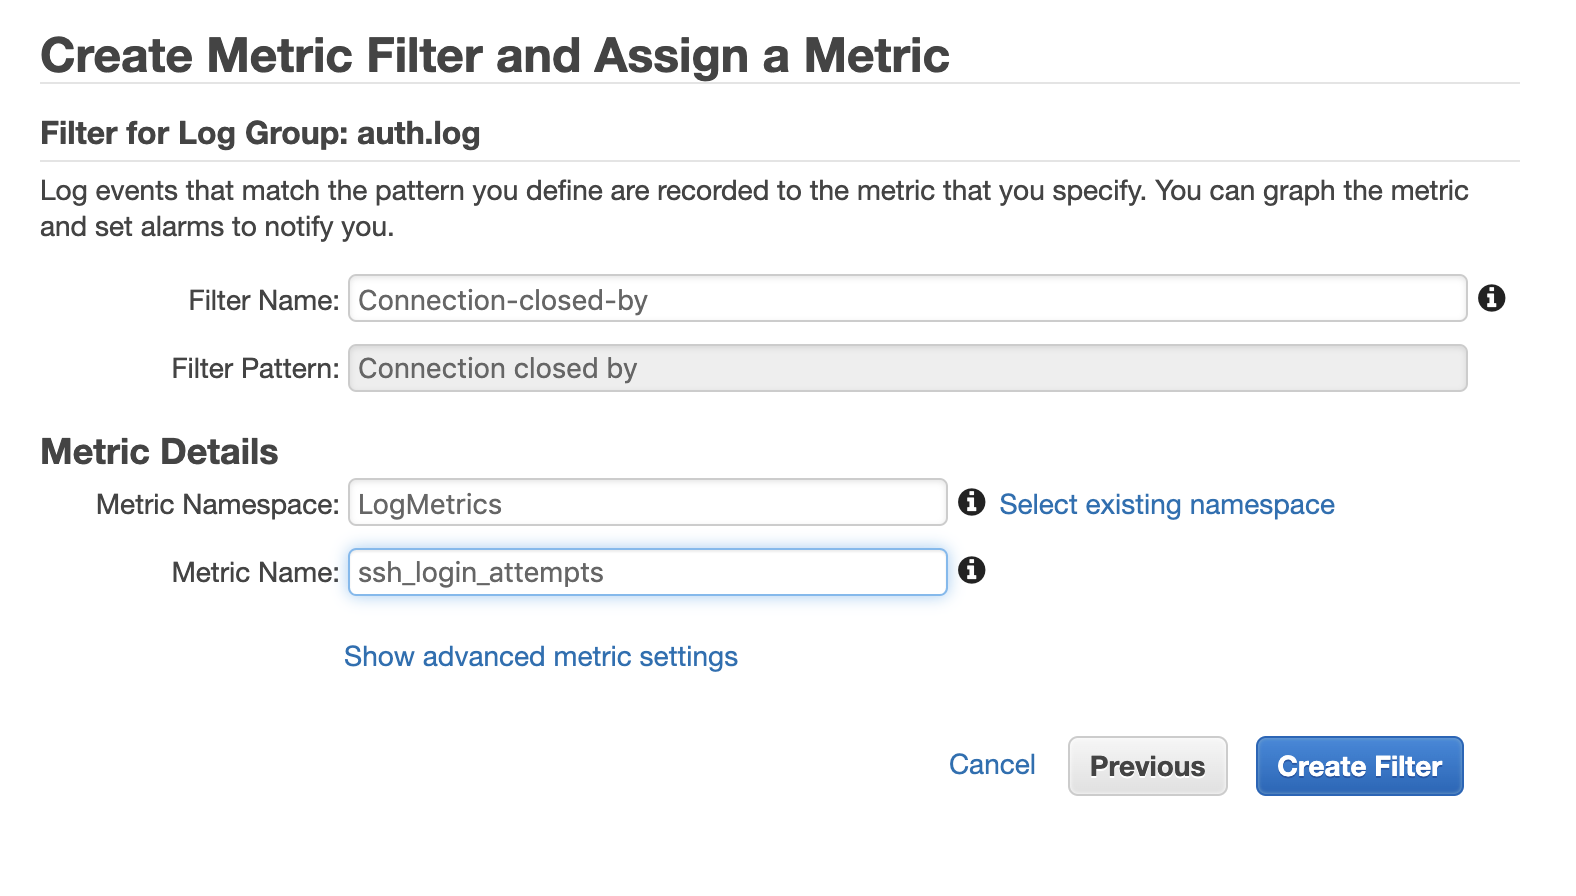 Name the filter and define the metric details in Amazon CloudWatch.